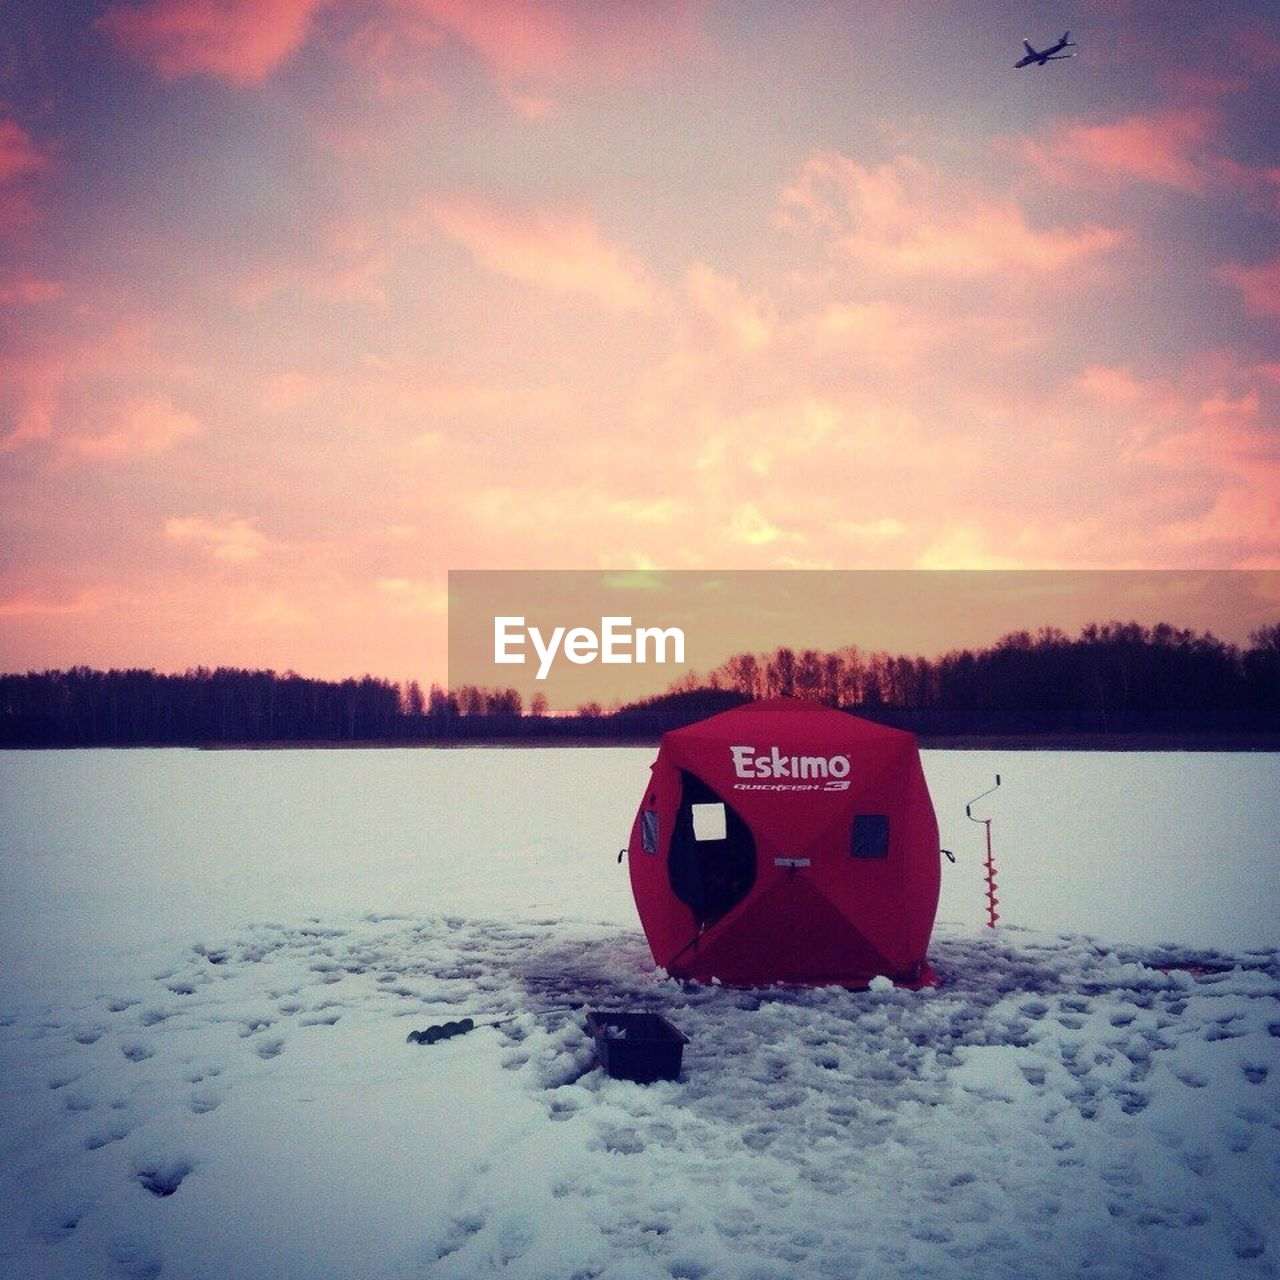 snow, sky, cold temperature, winter, text, weather, nature, outdoors, communication, no people, beauty in nature, red, sunset, scenics, tranquility, water, day, tree